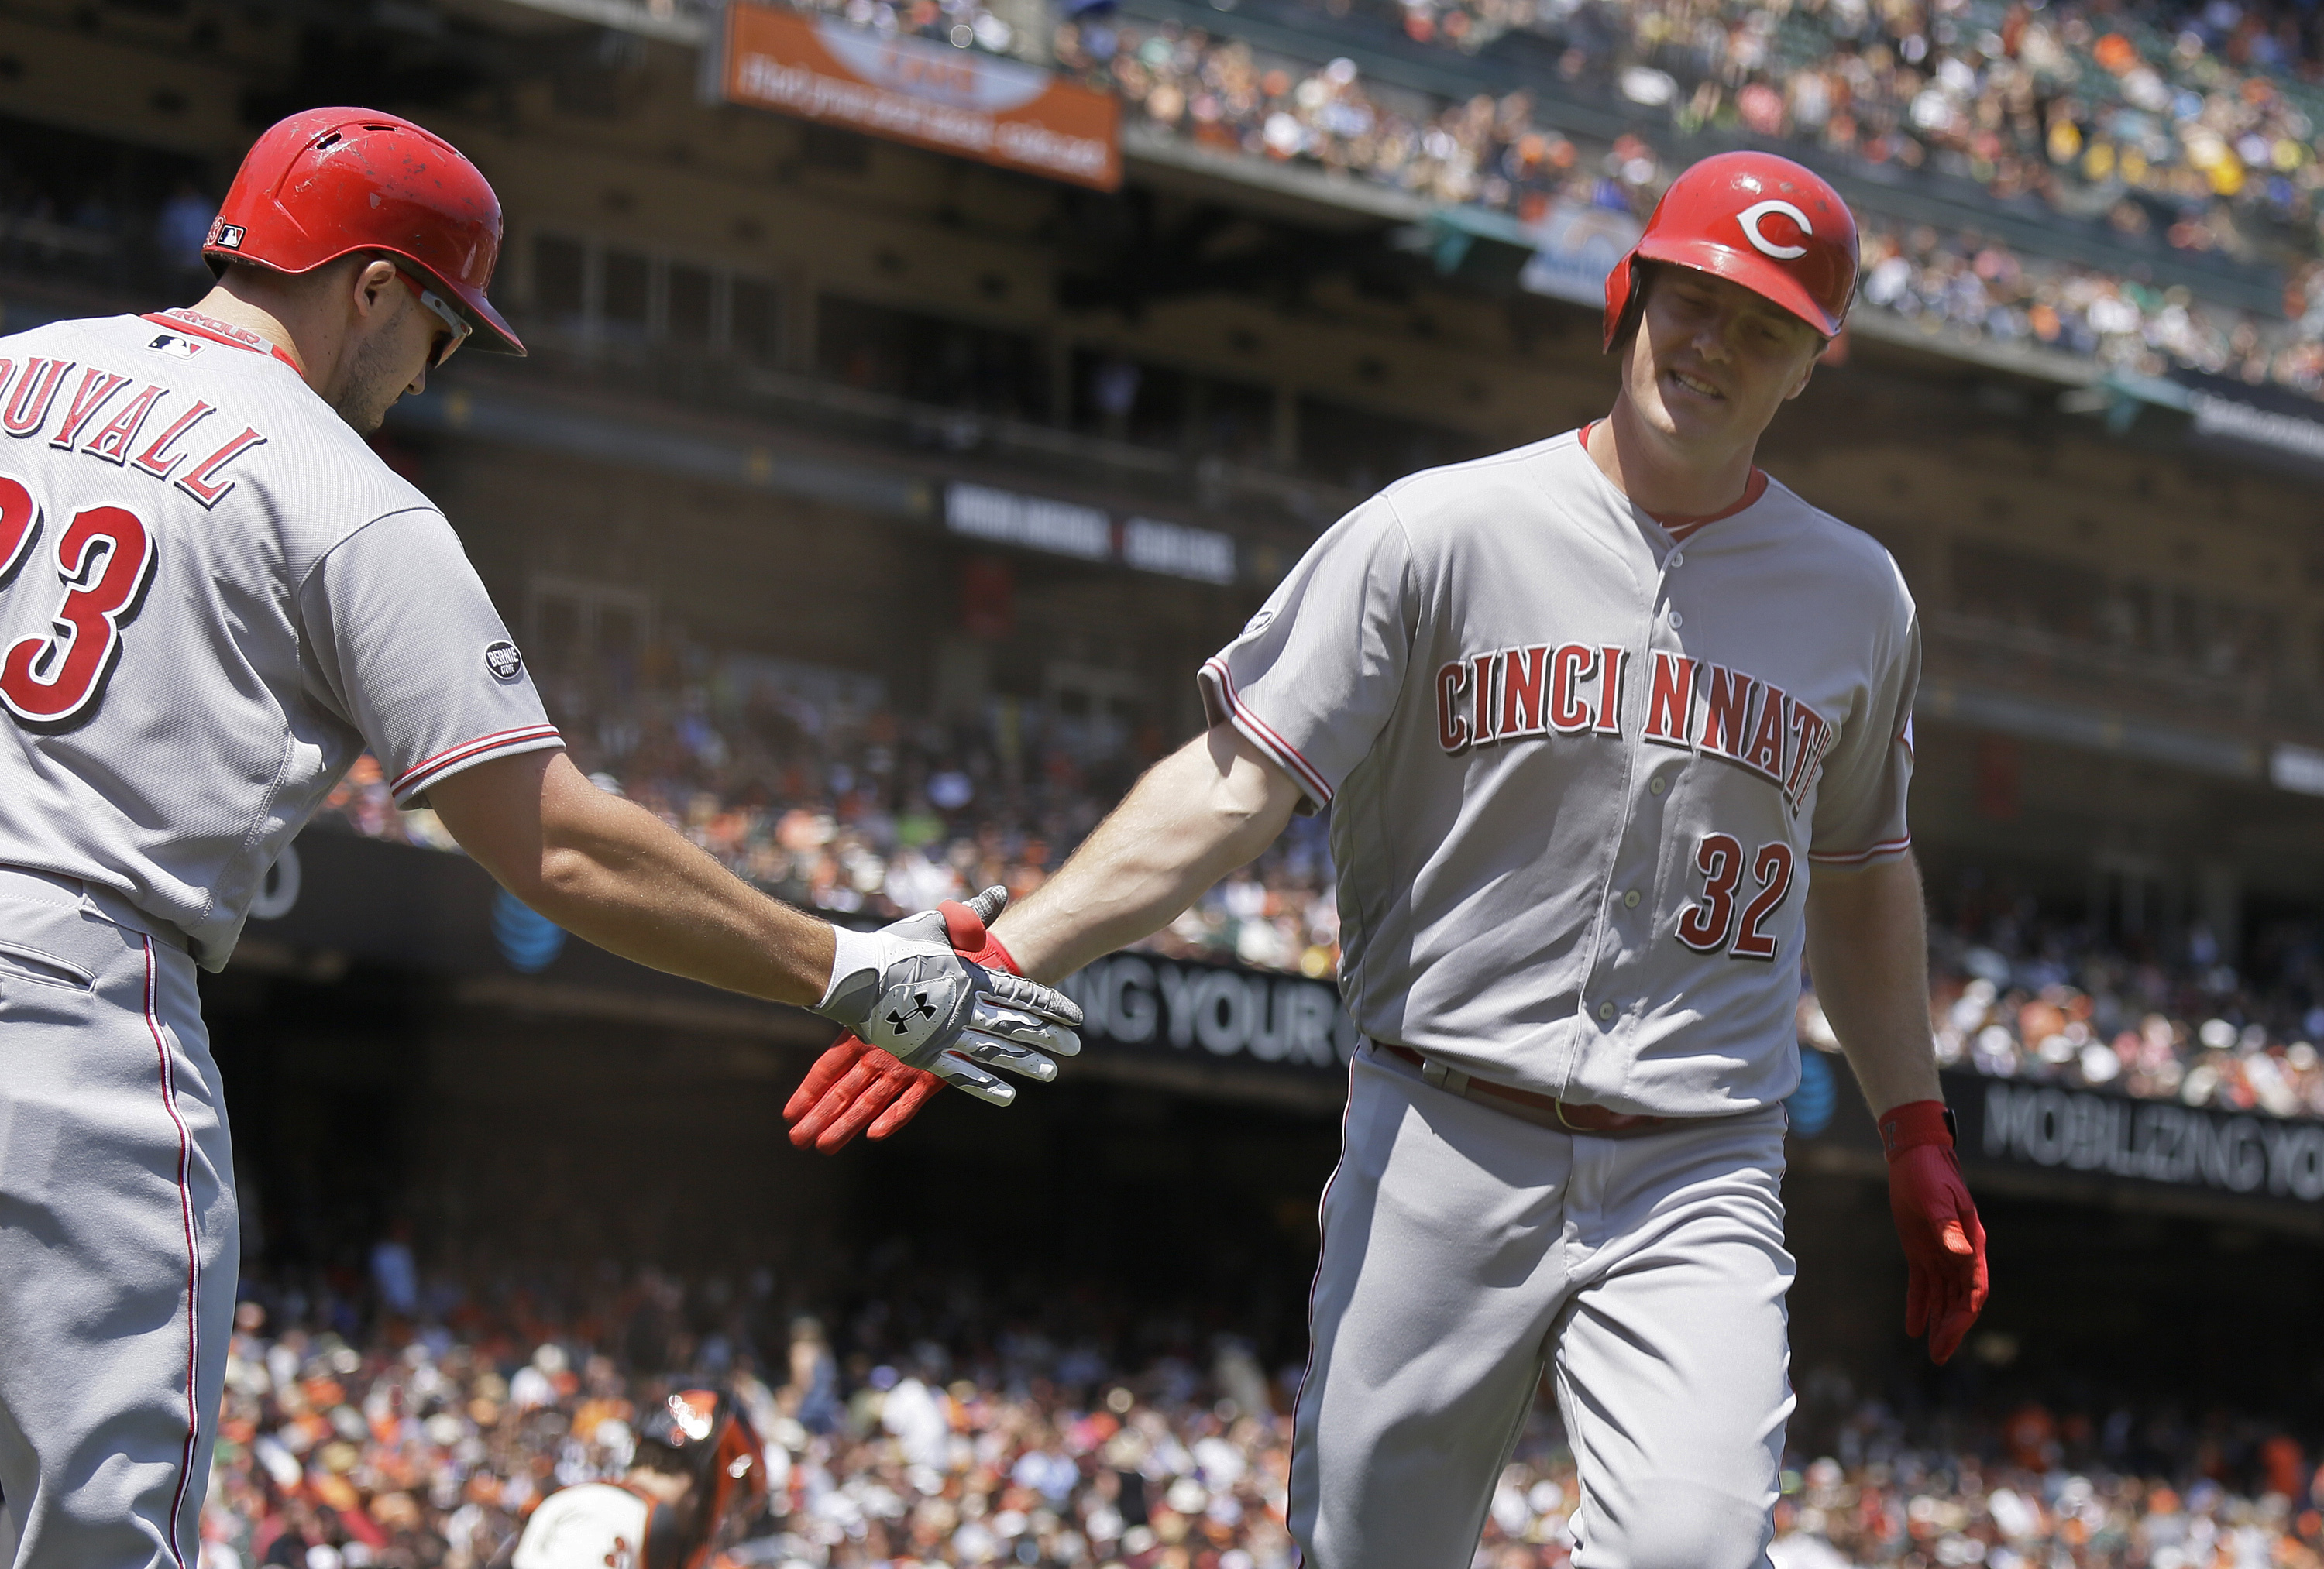 Cincinnati Reds' Jay Bruce, right, is greeted by Adam Duvall, left, after hitting a home run off San Francisco Giants starting pitcher Madison Bumgarner during the seventh inning of a baseball game Wednesday, July 27, 2016, in San Francisco. Cincinnati wo